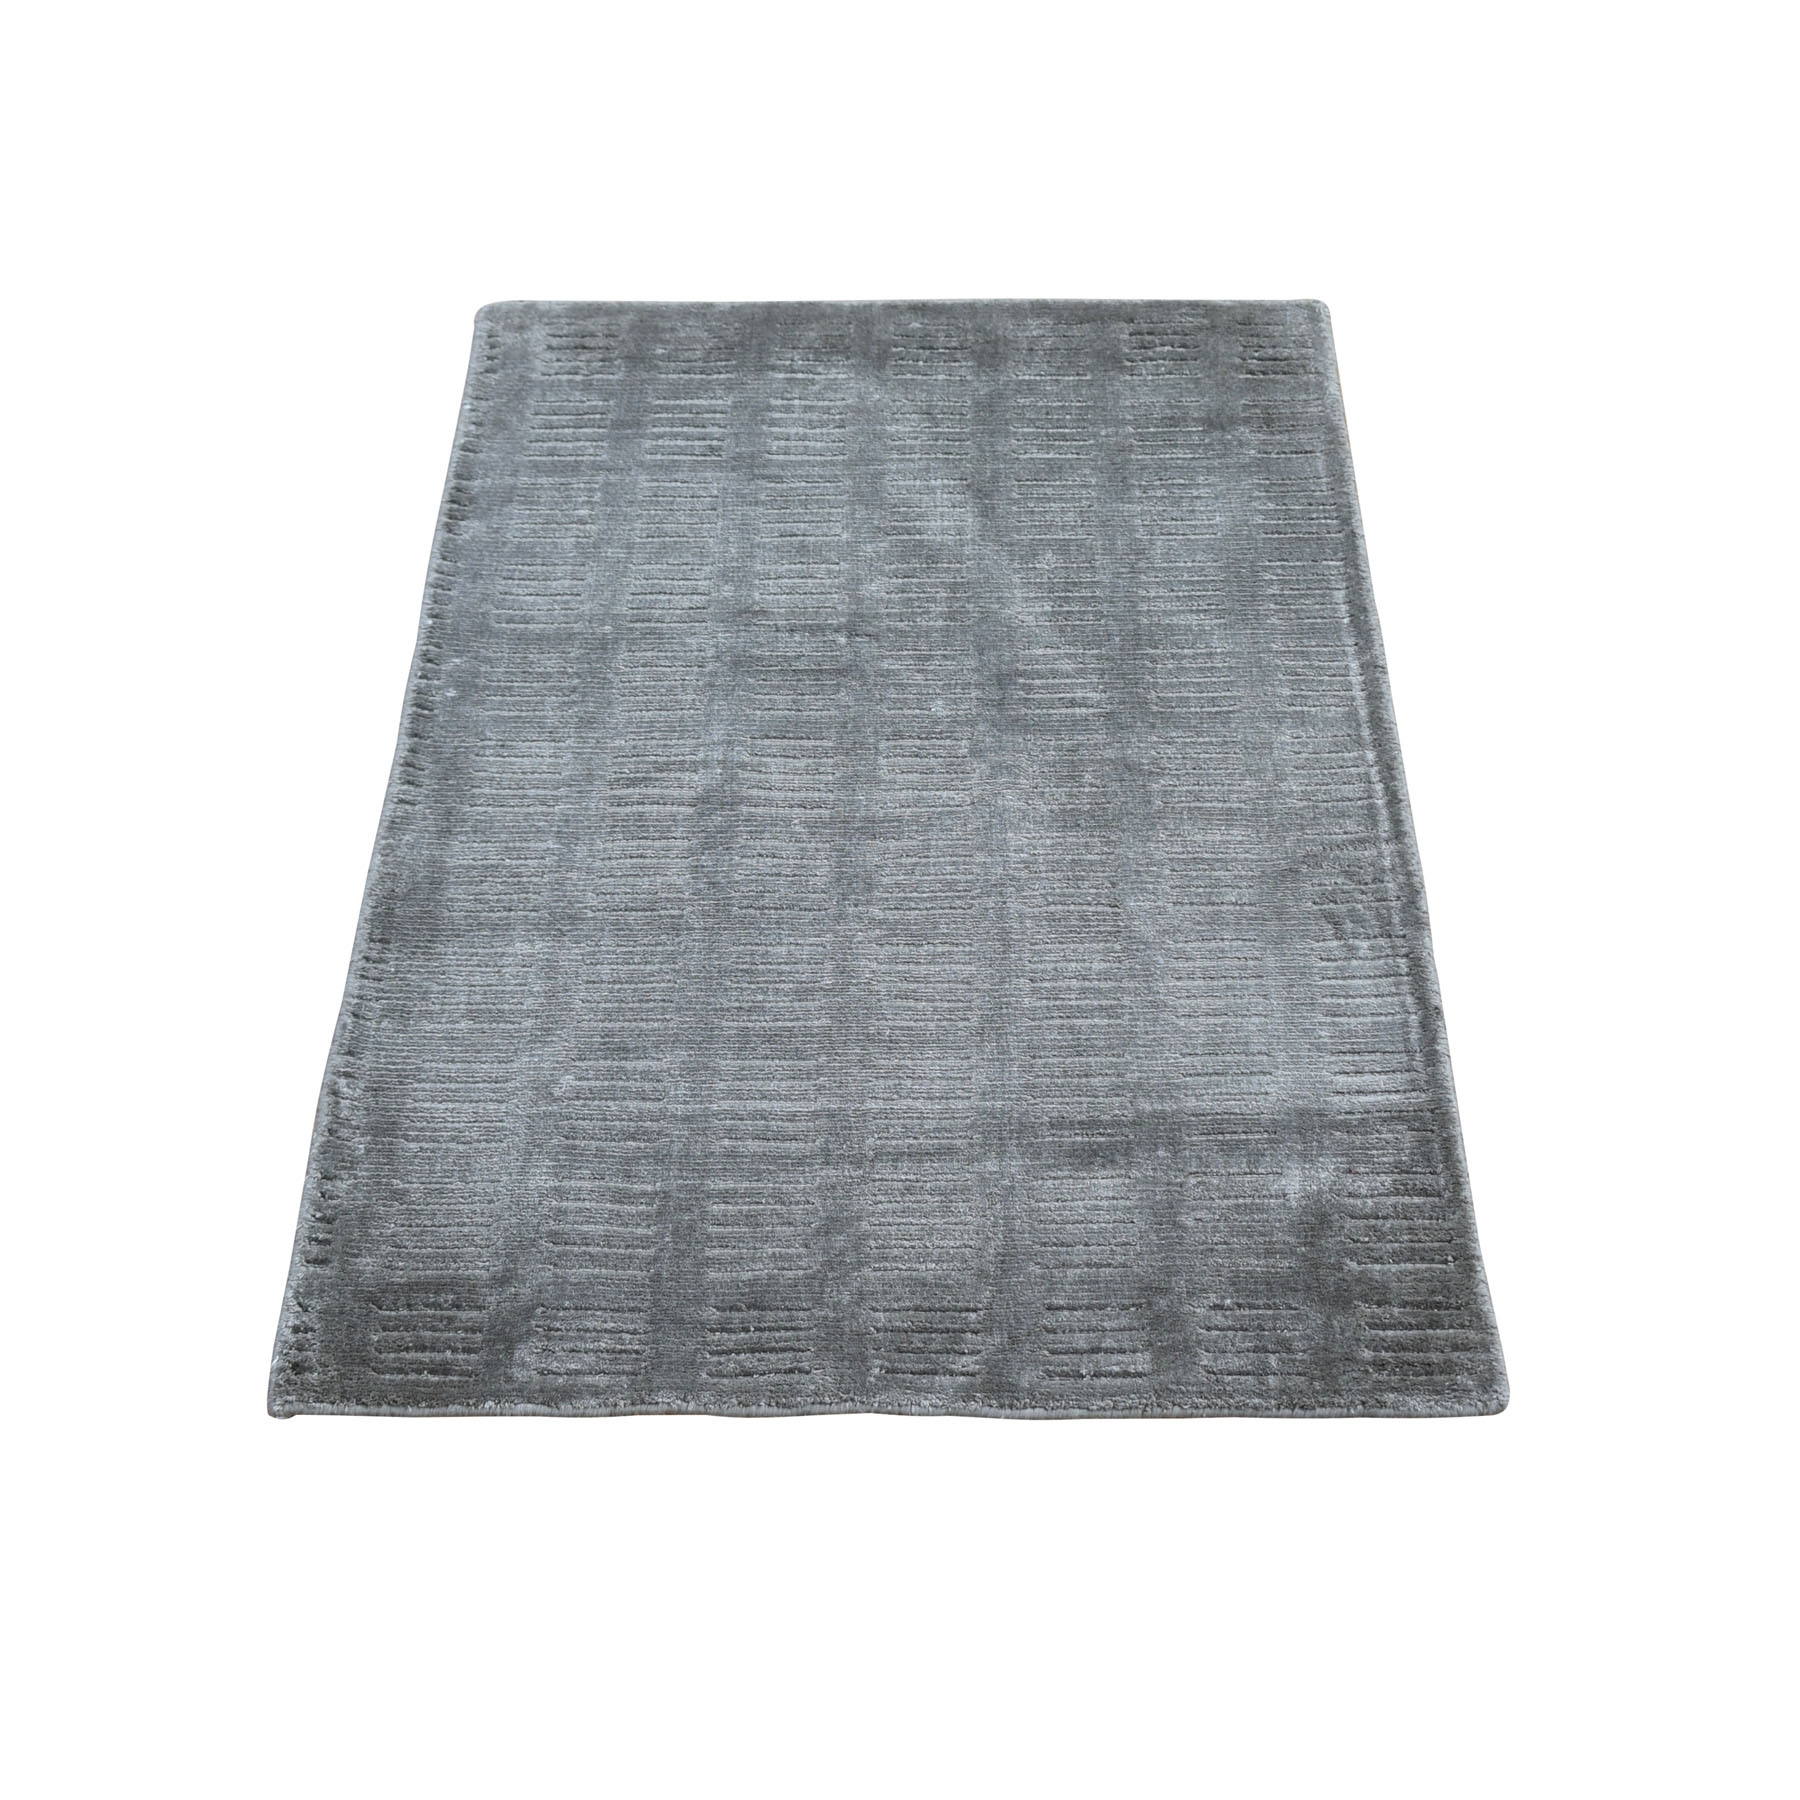 Mid Century Modern Collection Hand Loomed Grey Rug No: 1118270